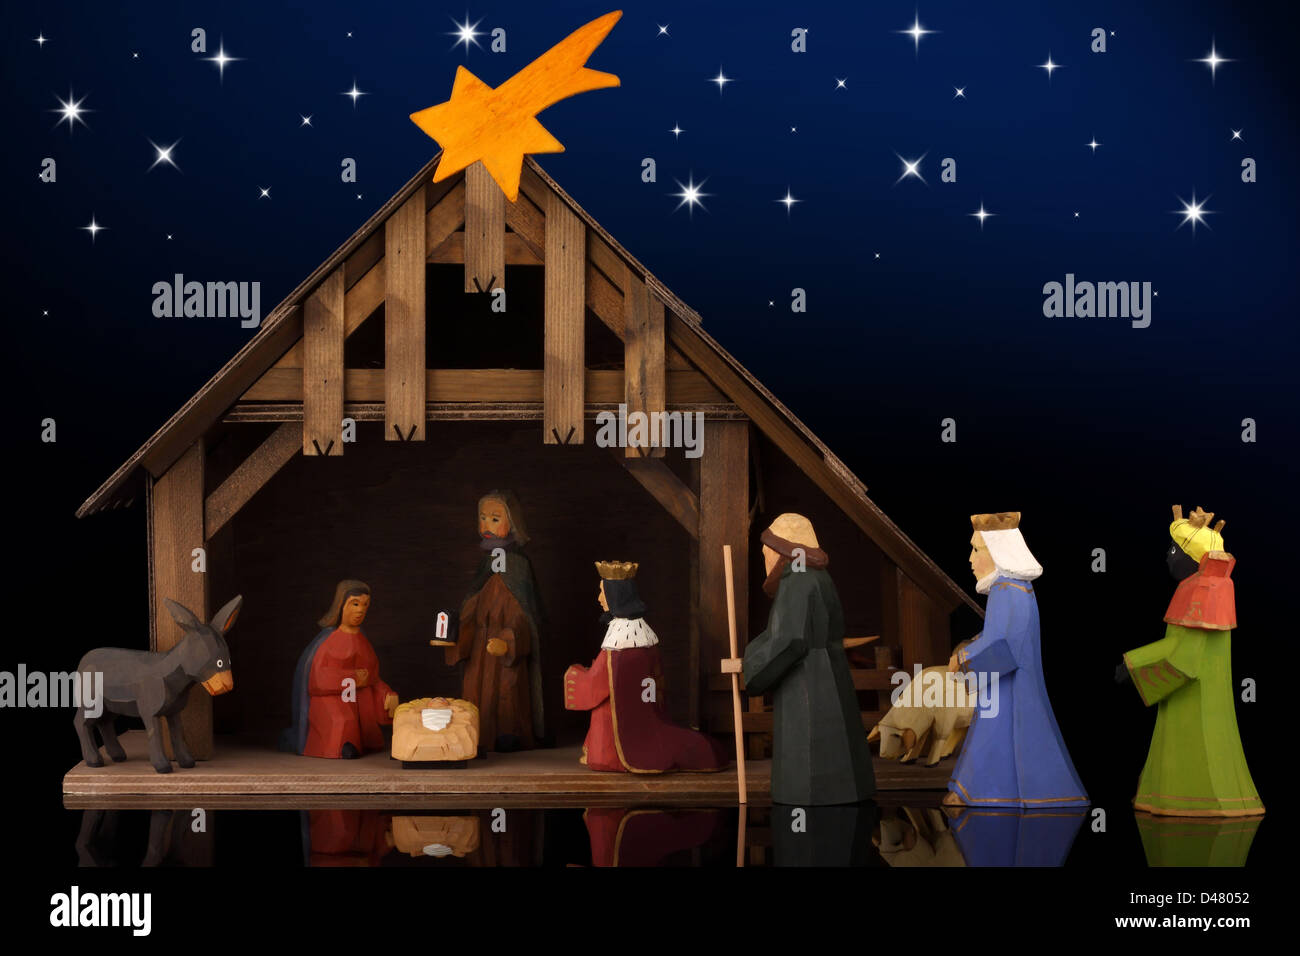 The christmas tale with a nativity scene. Stock Photo